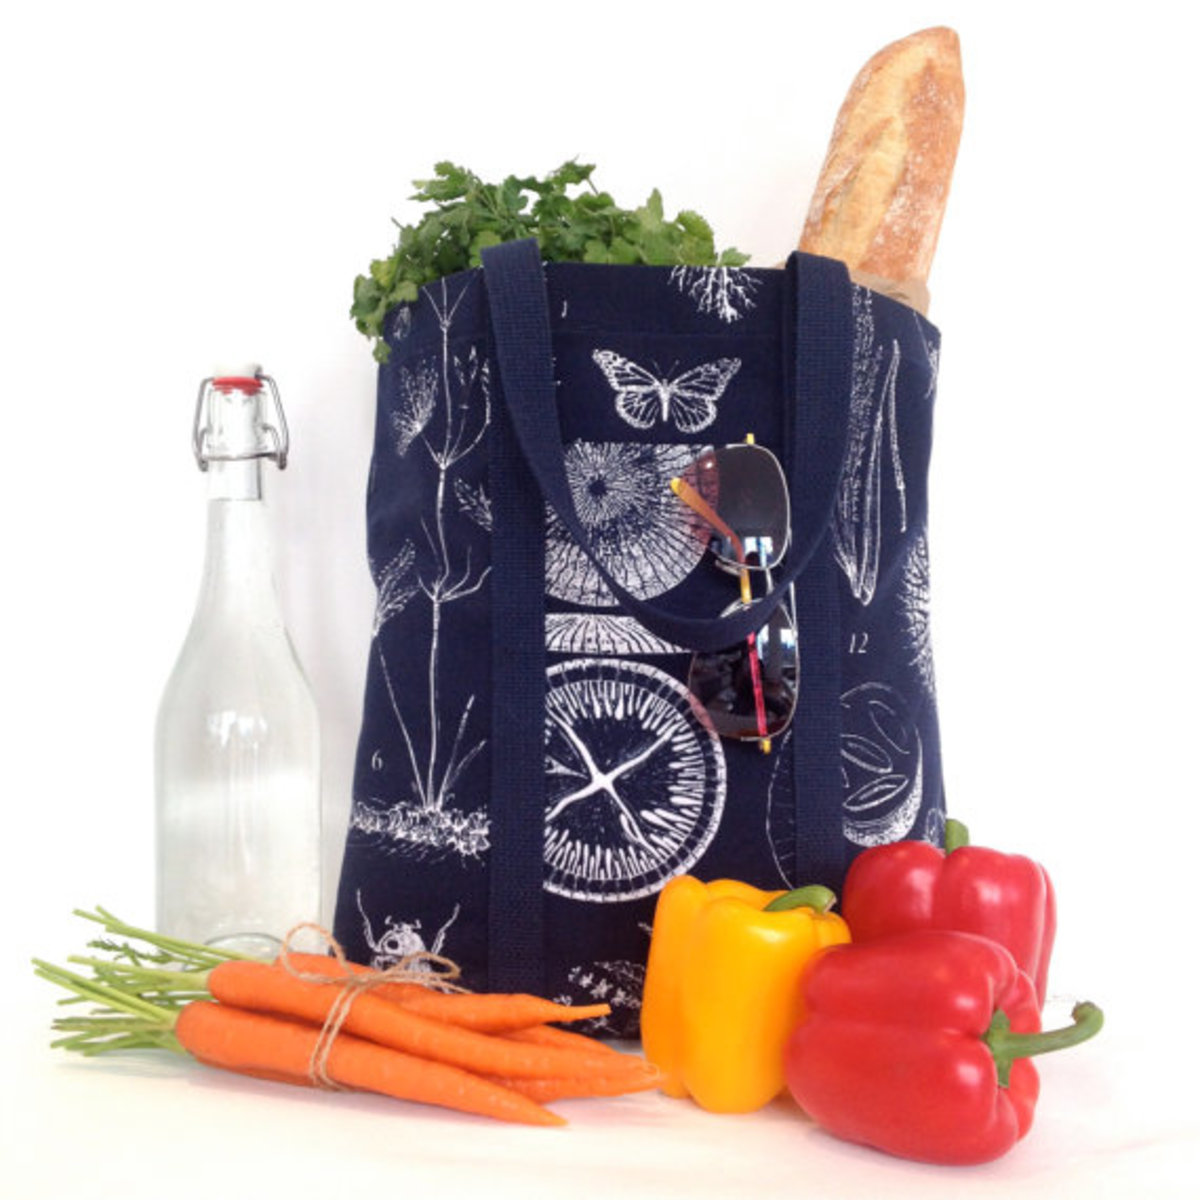 Make your own reusable grocery bags.